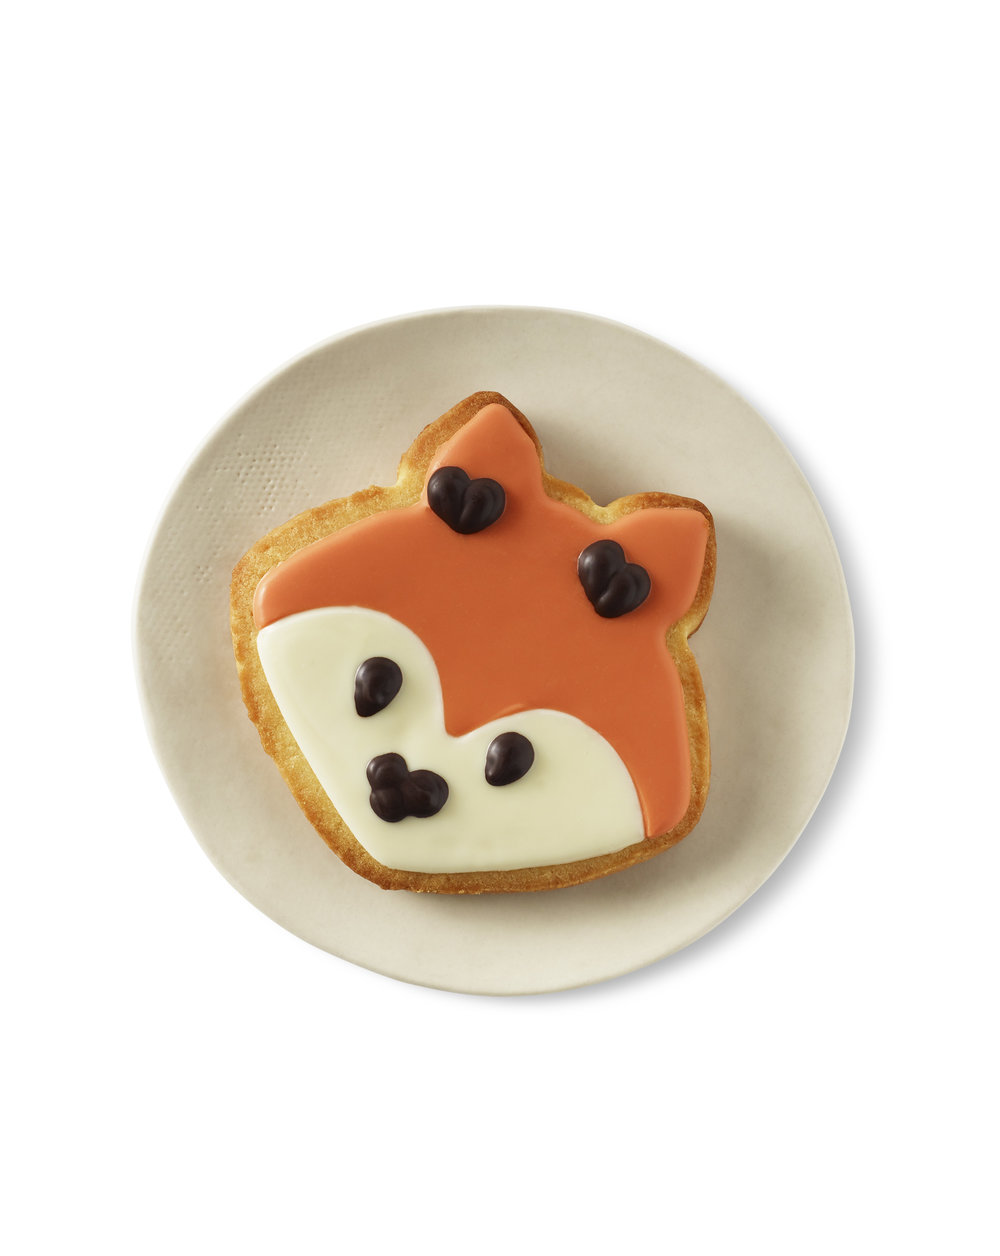 Starbucks Fox Iced Sugar Cookie